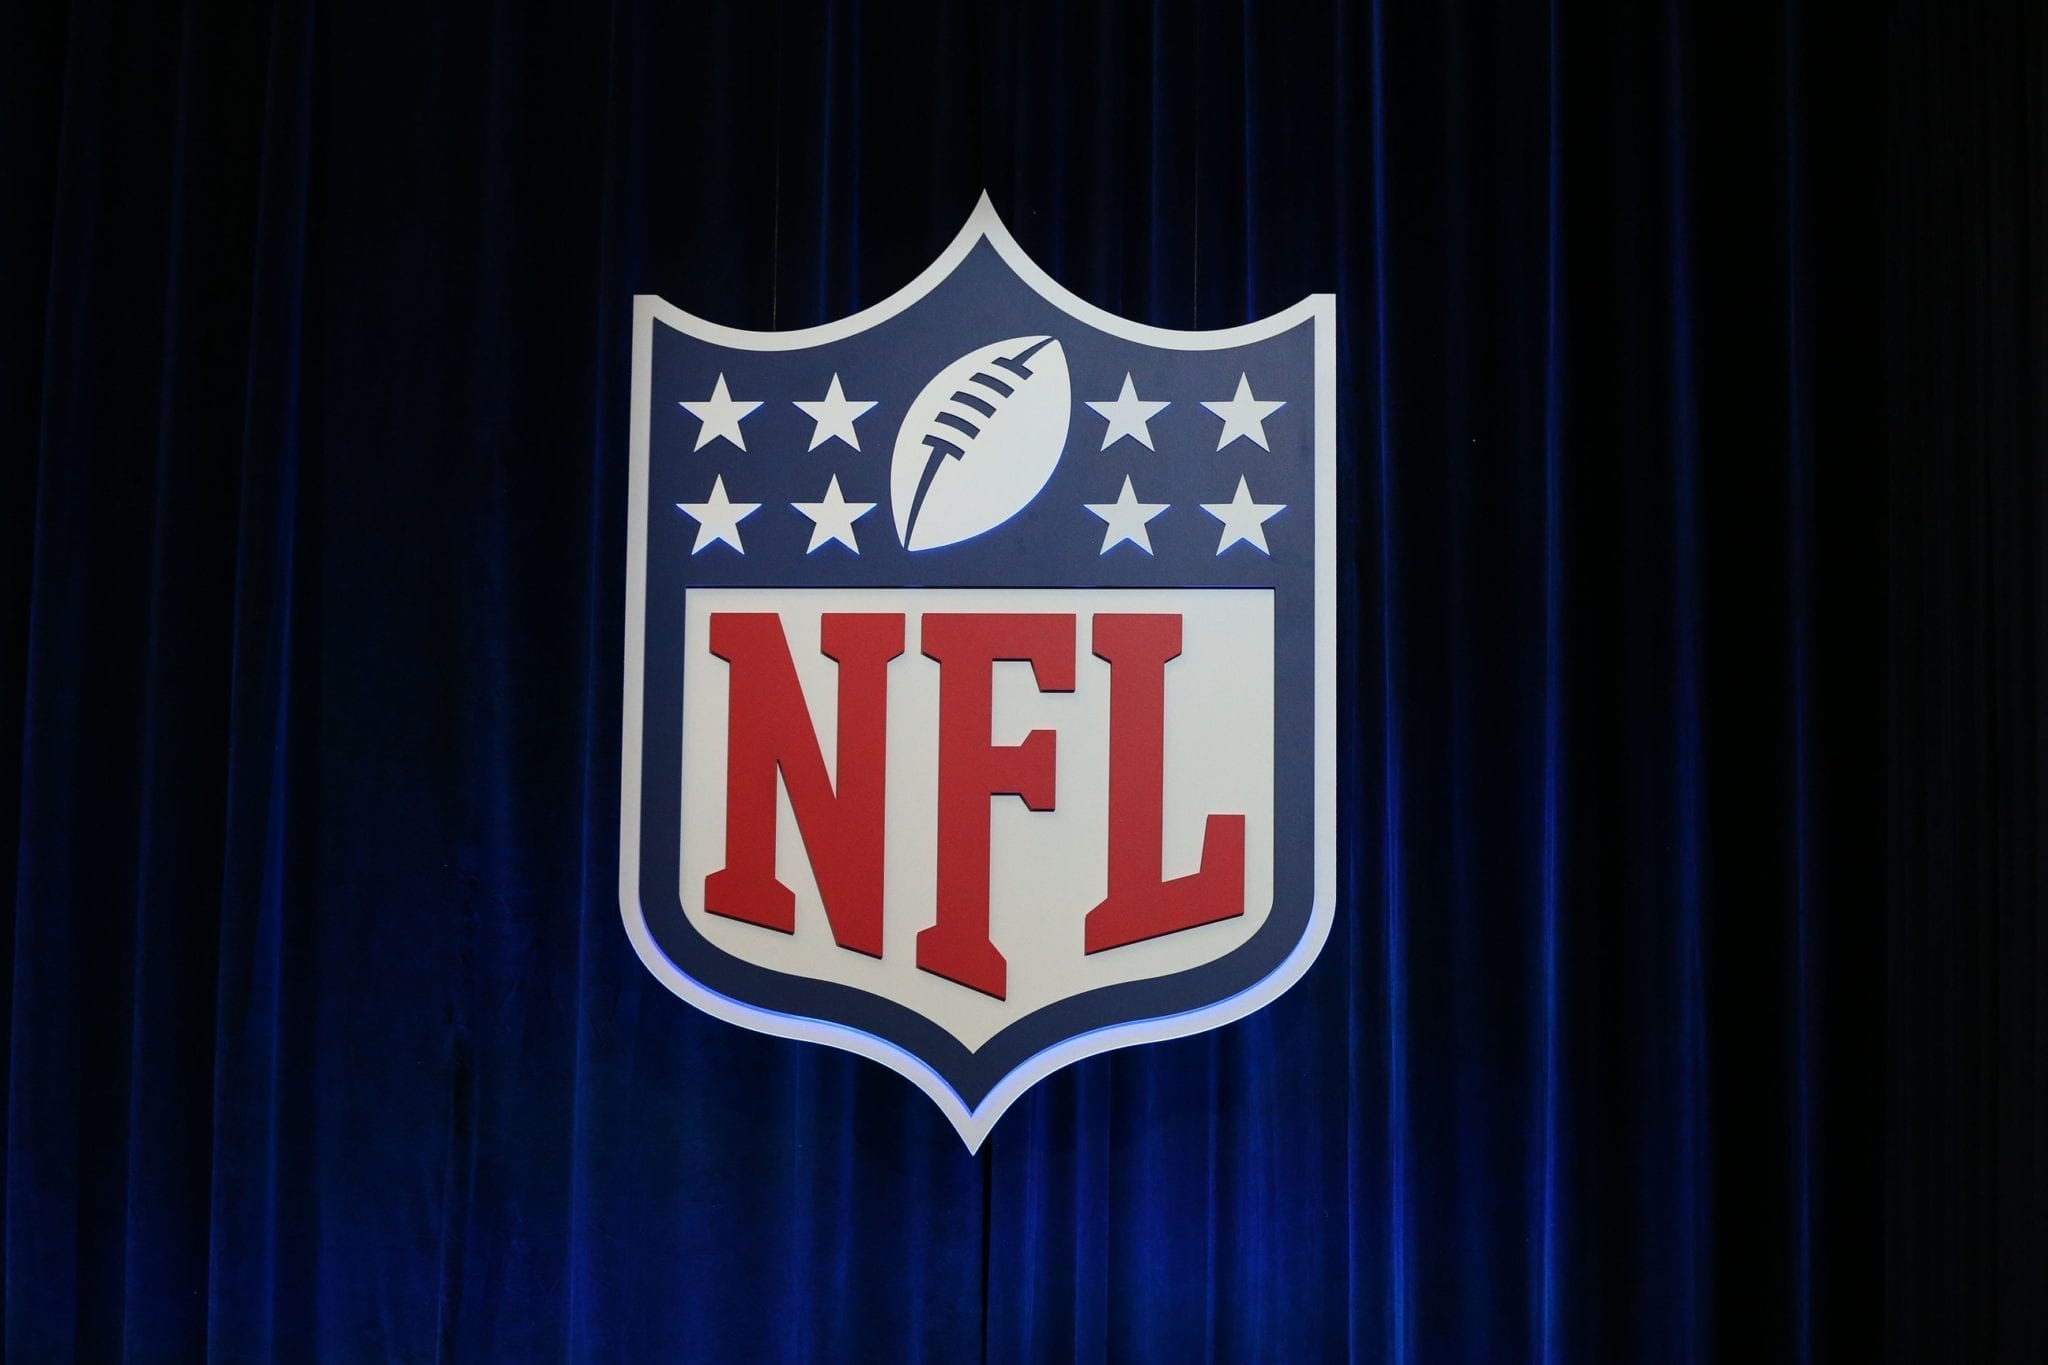 reputable site 7bbe6 65f15 Available 2019 NFL Free Agents List | NFLTradeRumors.co